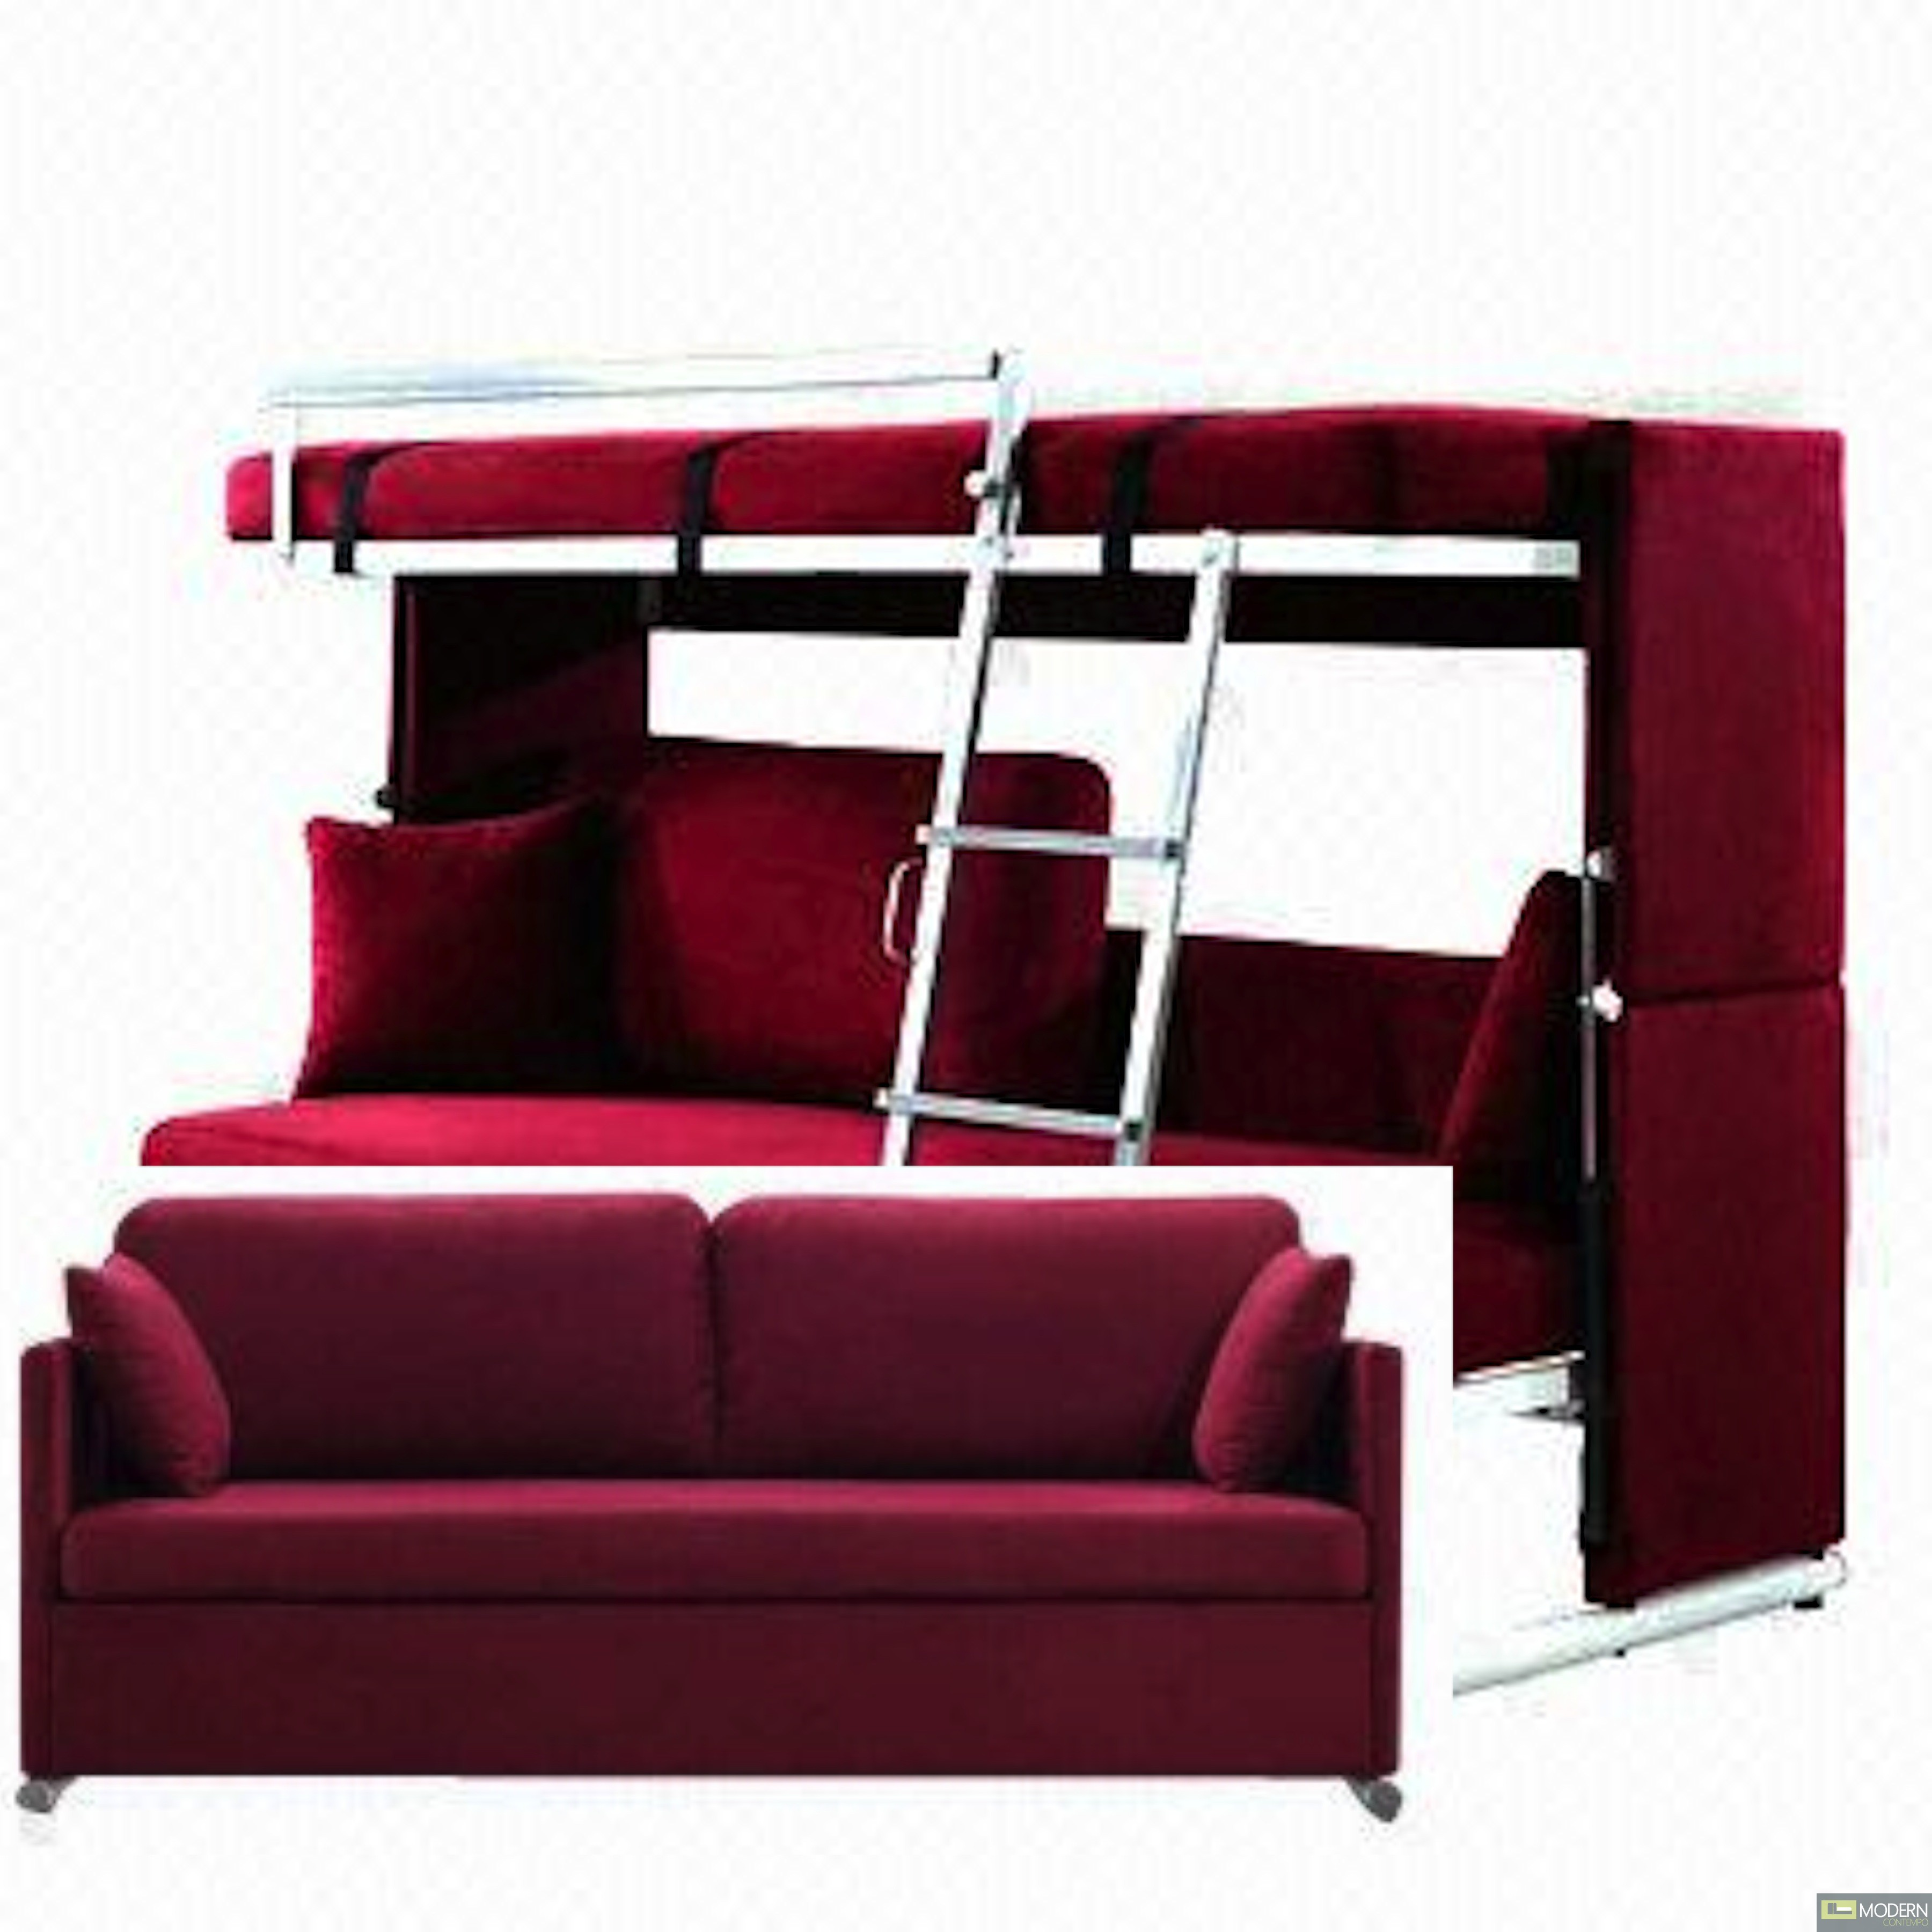 Sofa Converts To Bunk Beds Craziest Gad s to